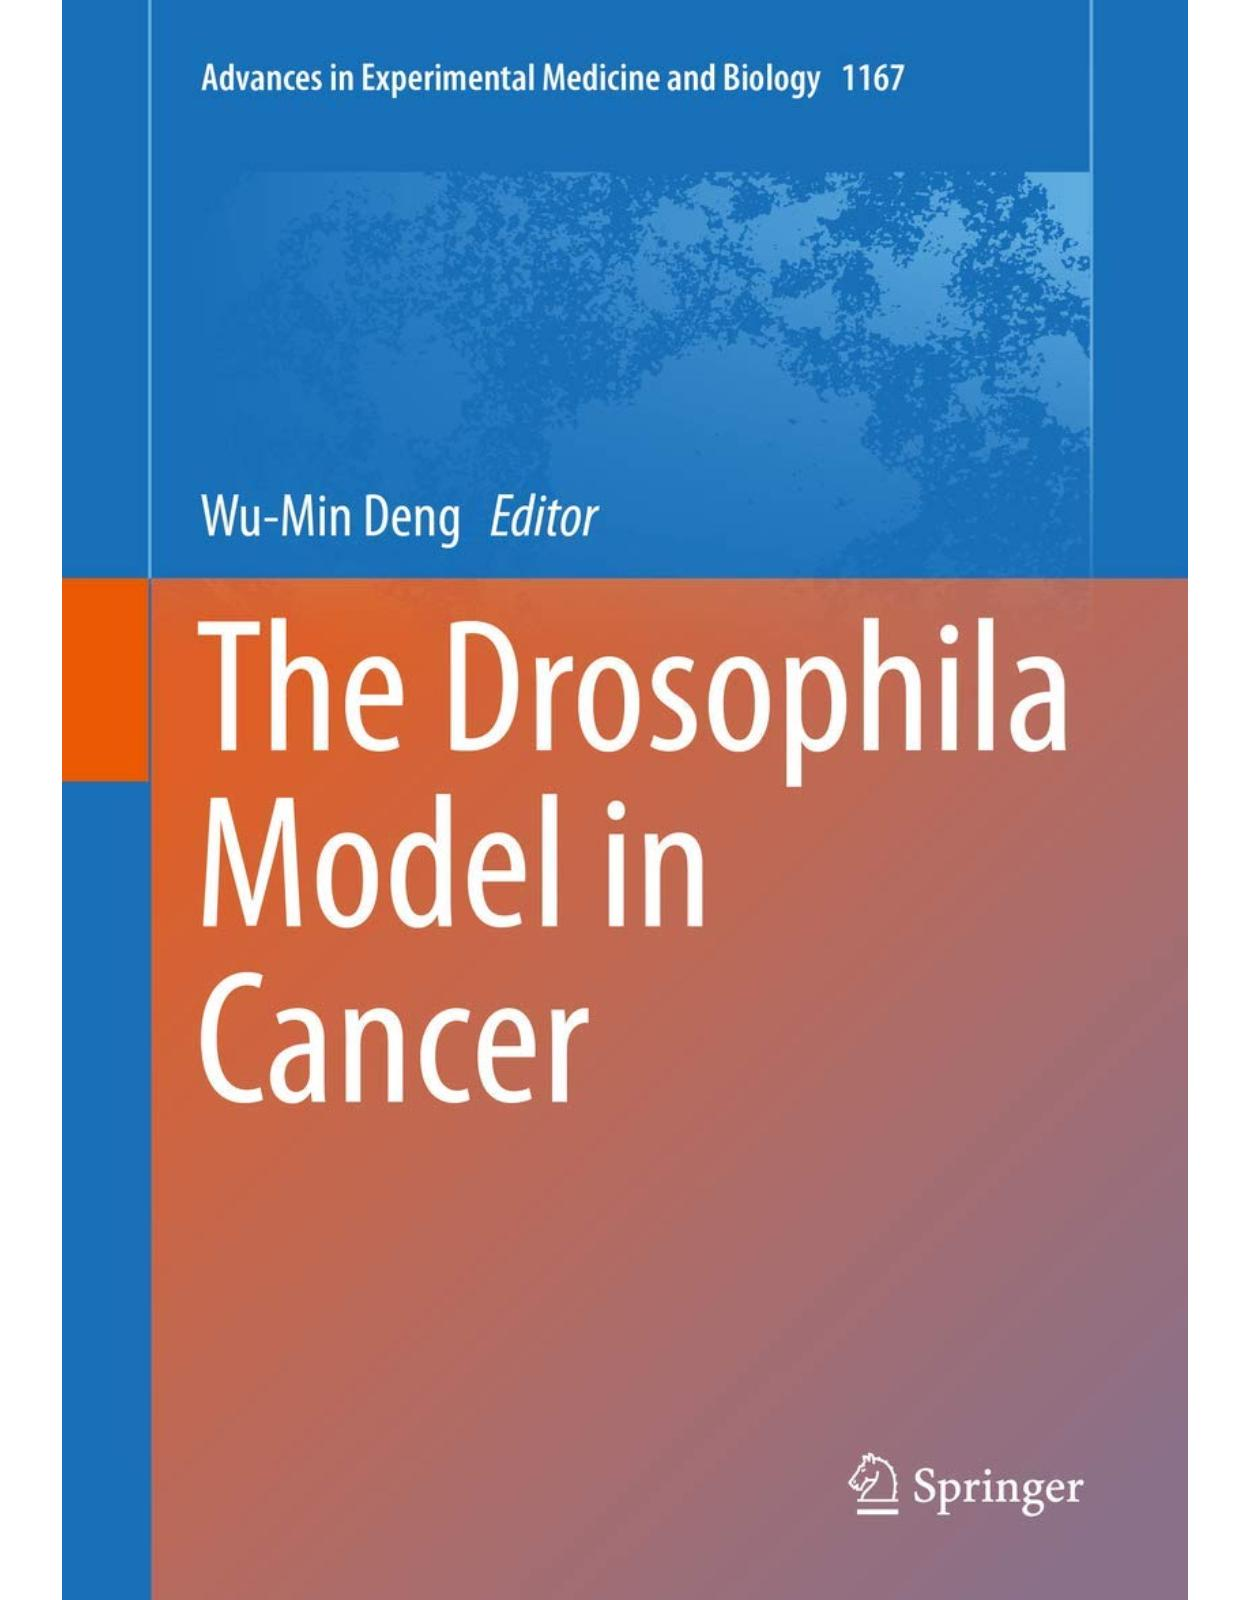 The Drosophila Model in Cancer